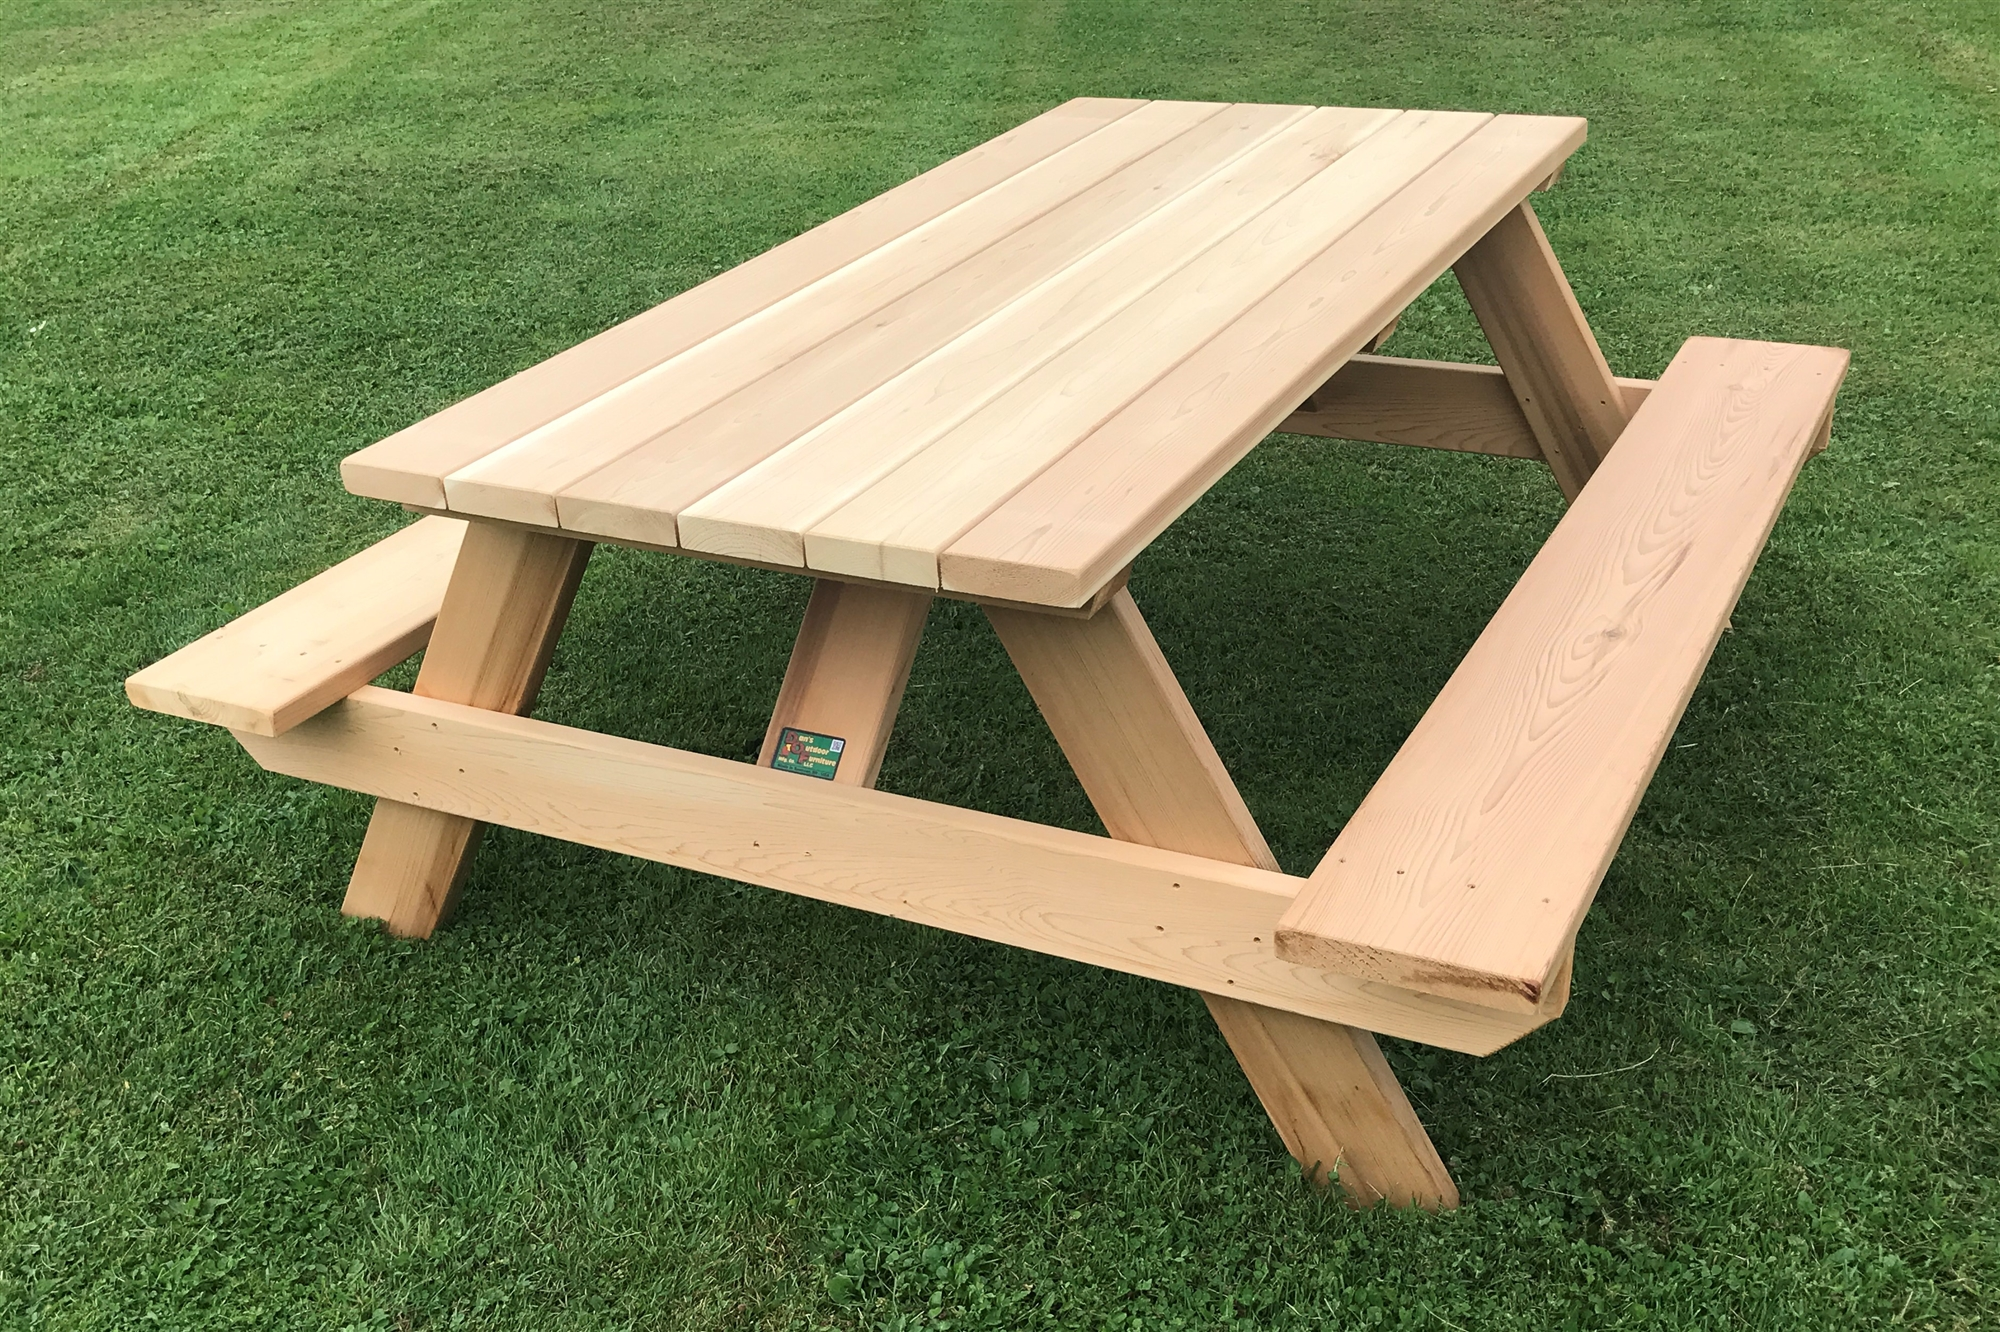 Classic 6 HeavyDuty Wooden Picnic Table for Home or Business